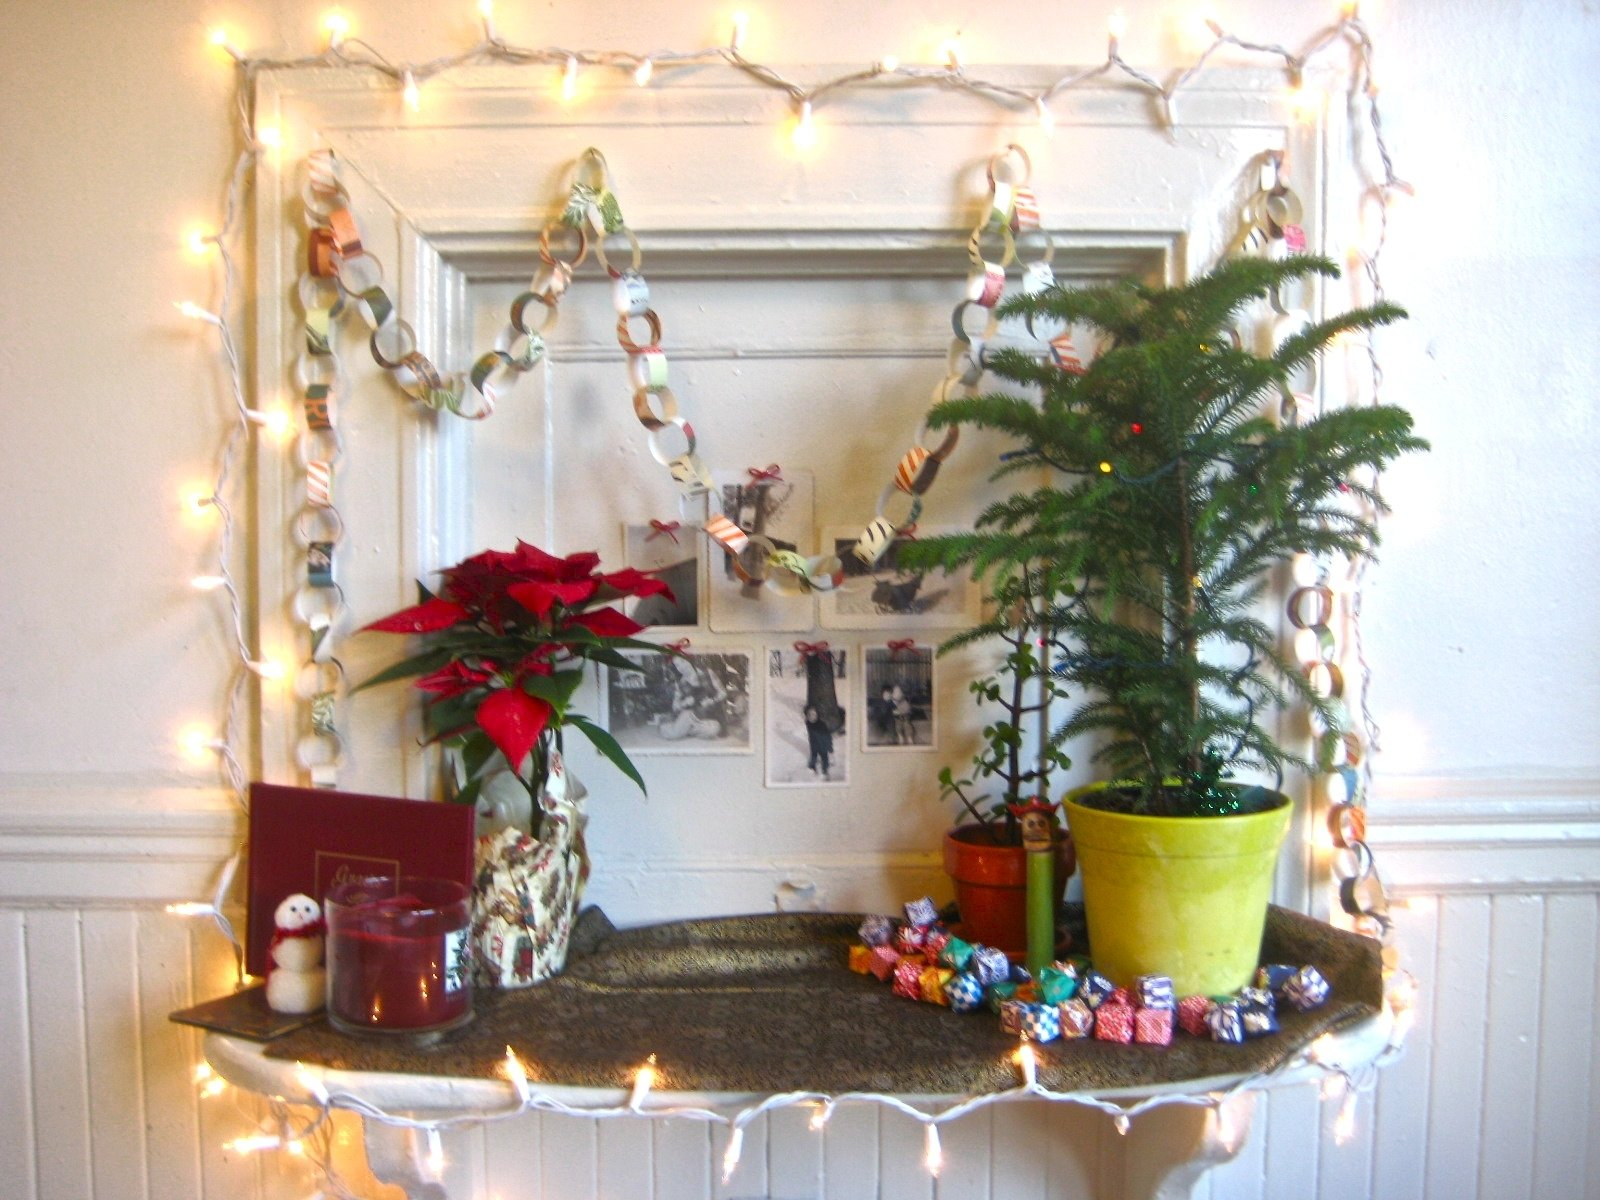 10 Amazing Christmas Tree Ideas For Small Spaces merry christmas decorating small spaces artsycraftsy christmas tree 2020